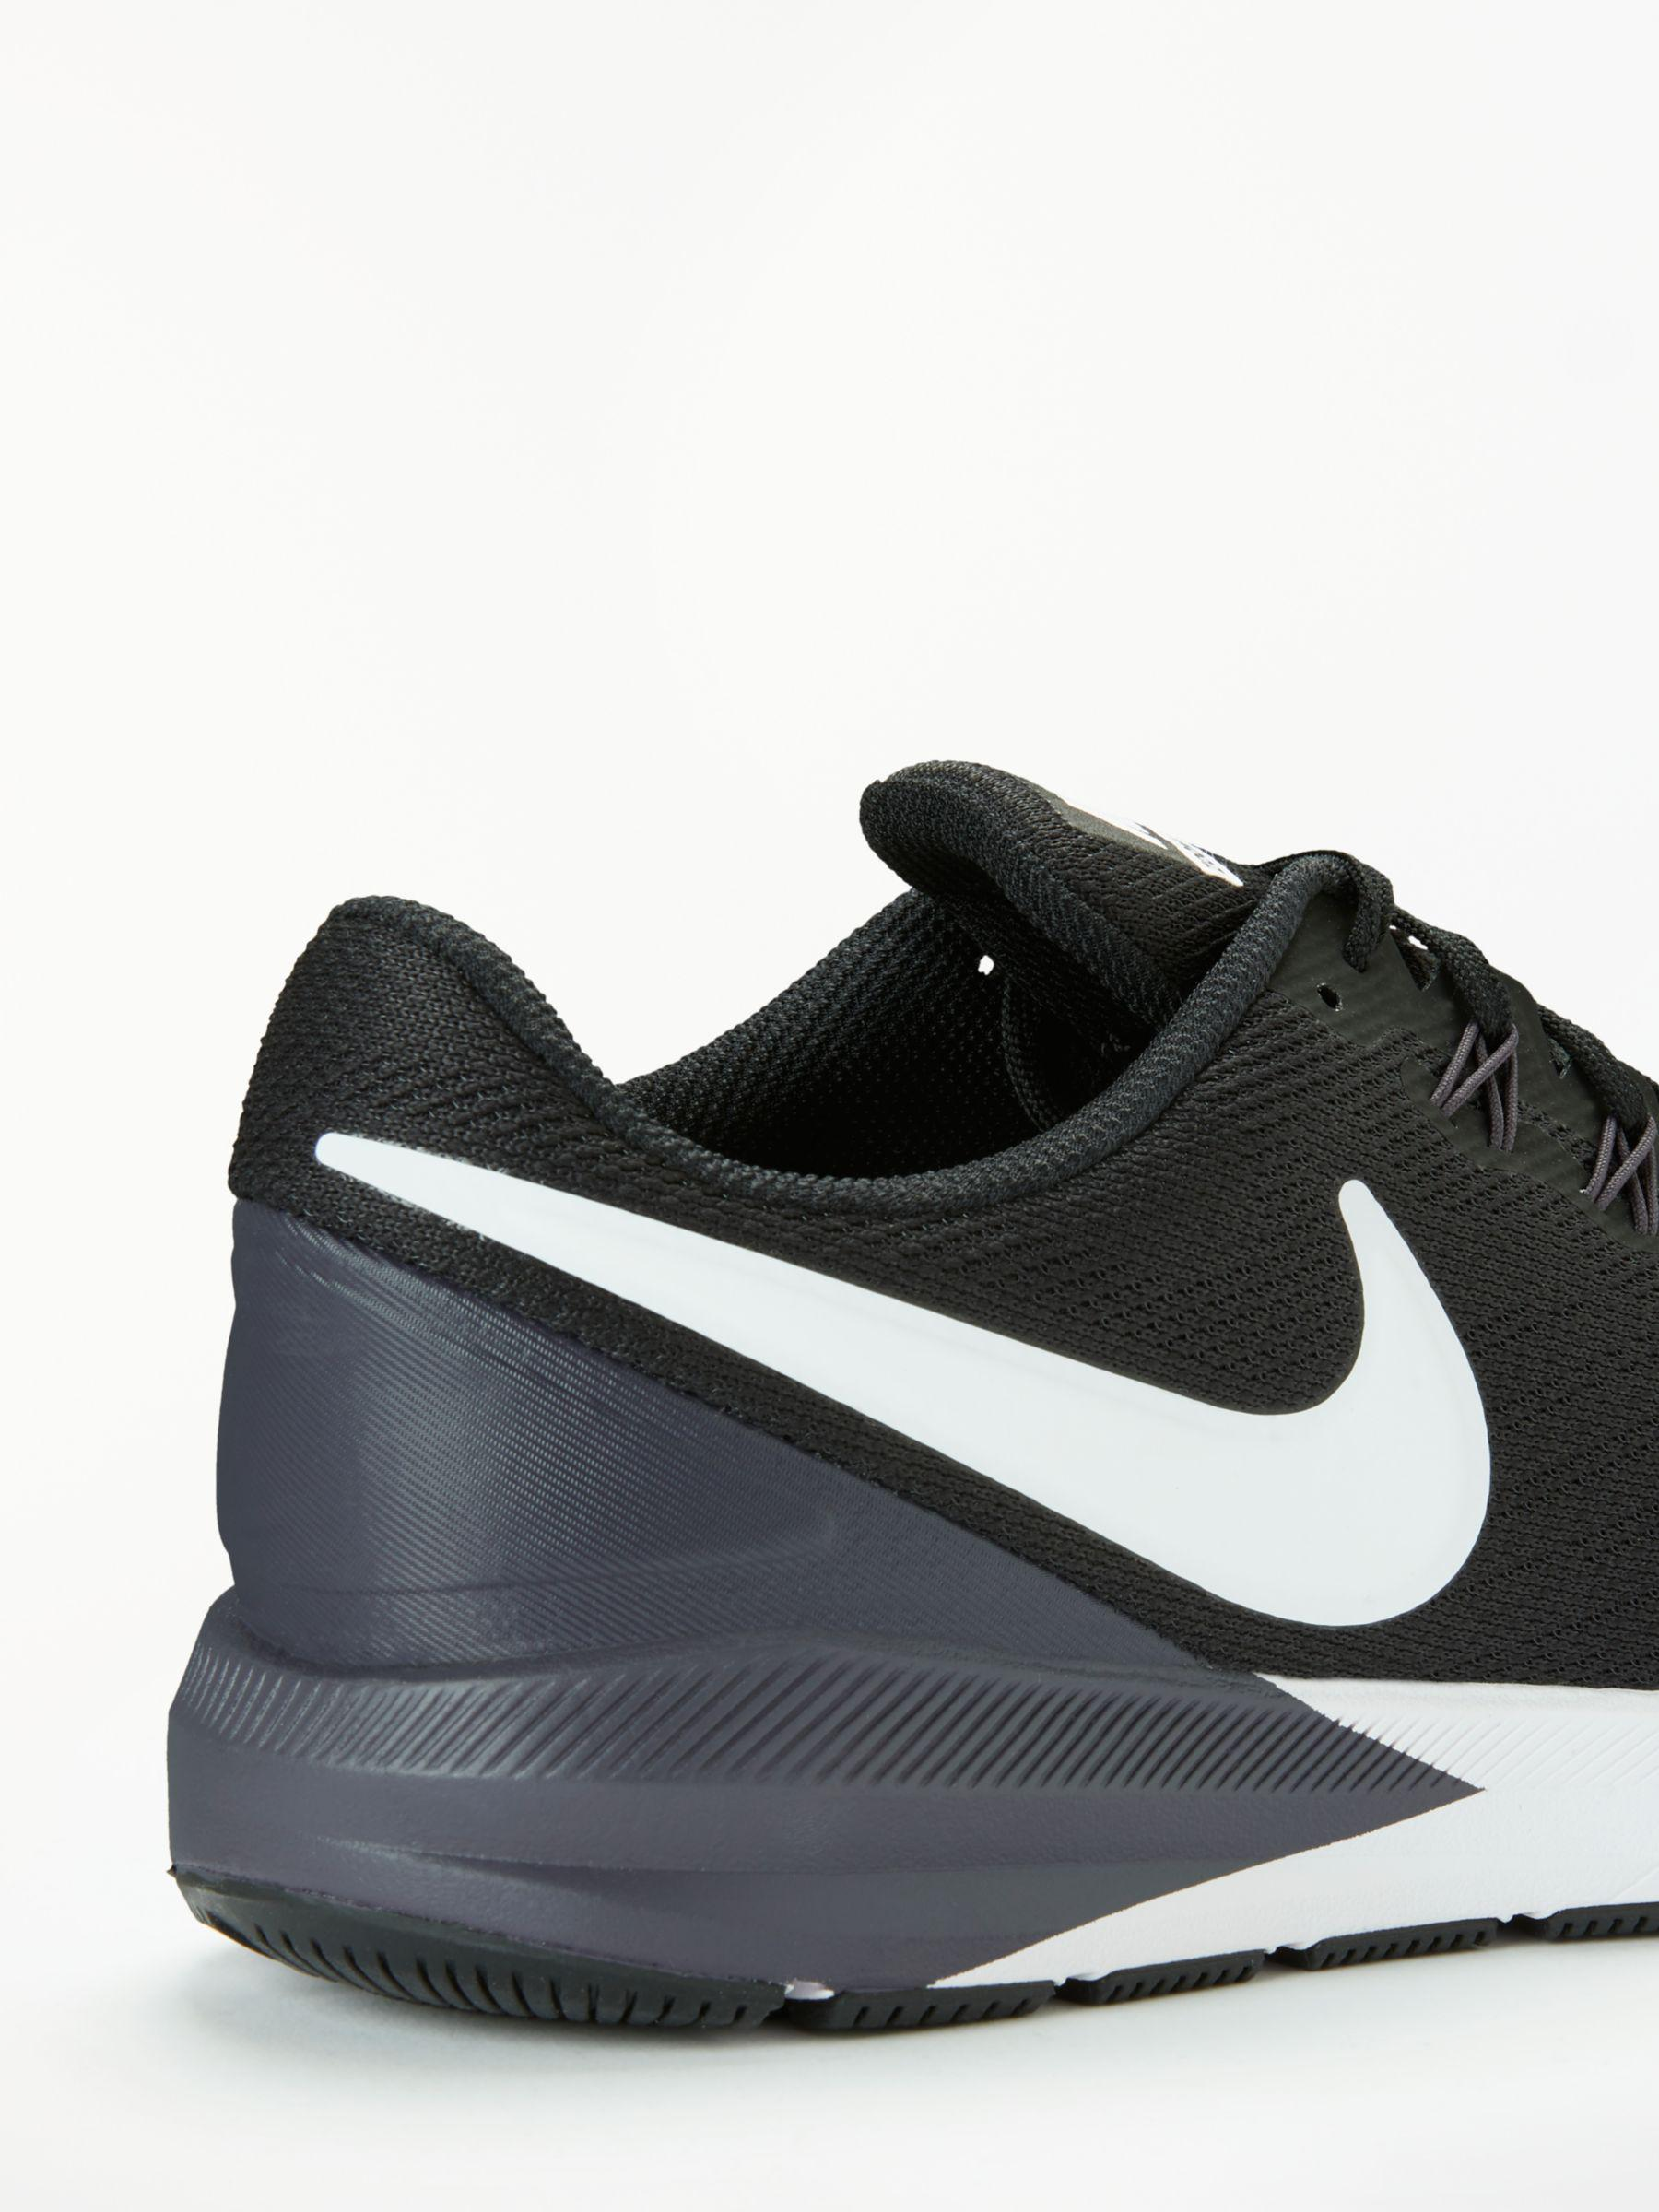 23ba9fcc803 Nike Air Zoom Structure 22 Men s Running Shoes in Black for Men - Lyst